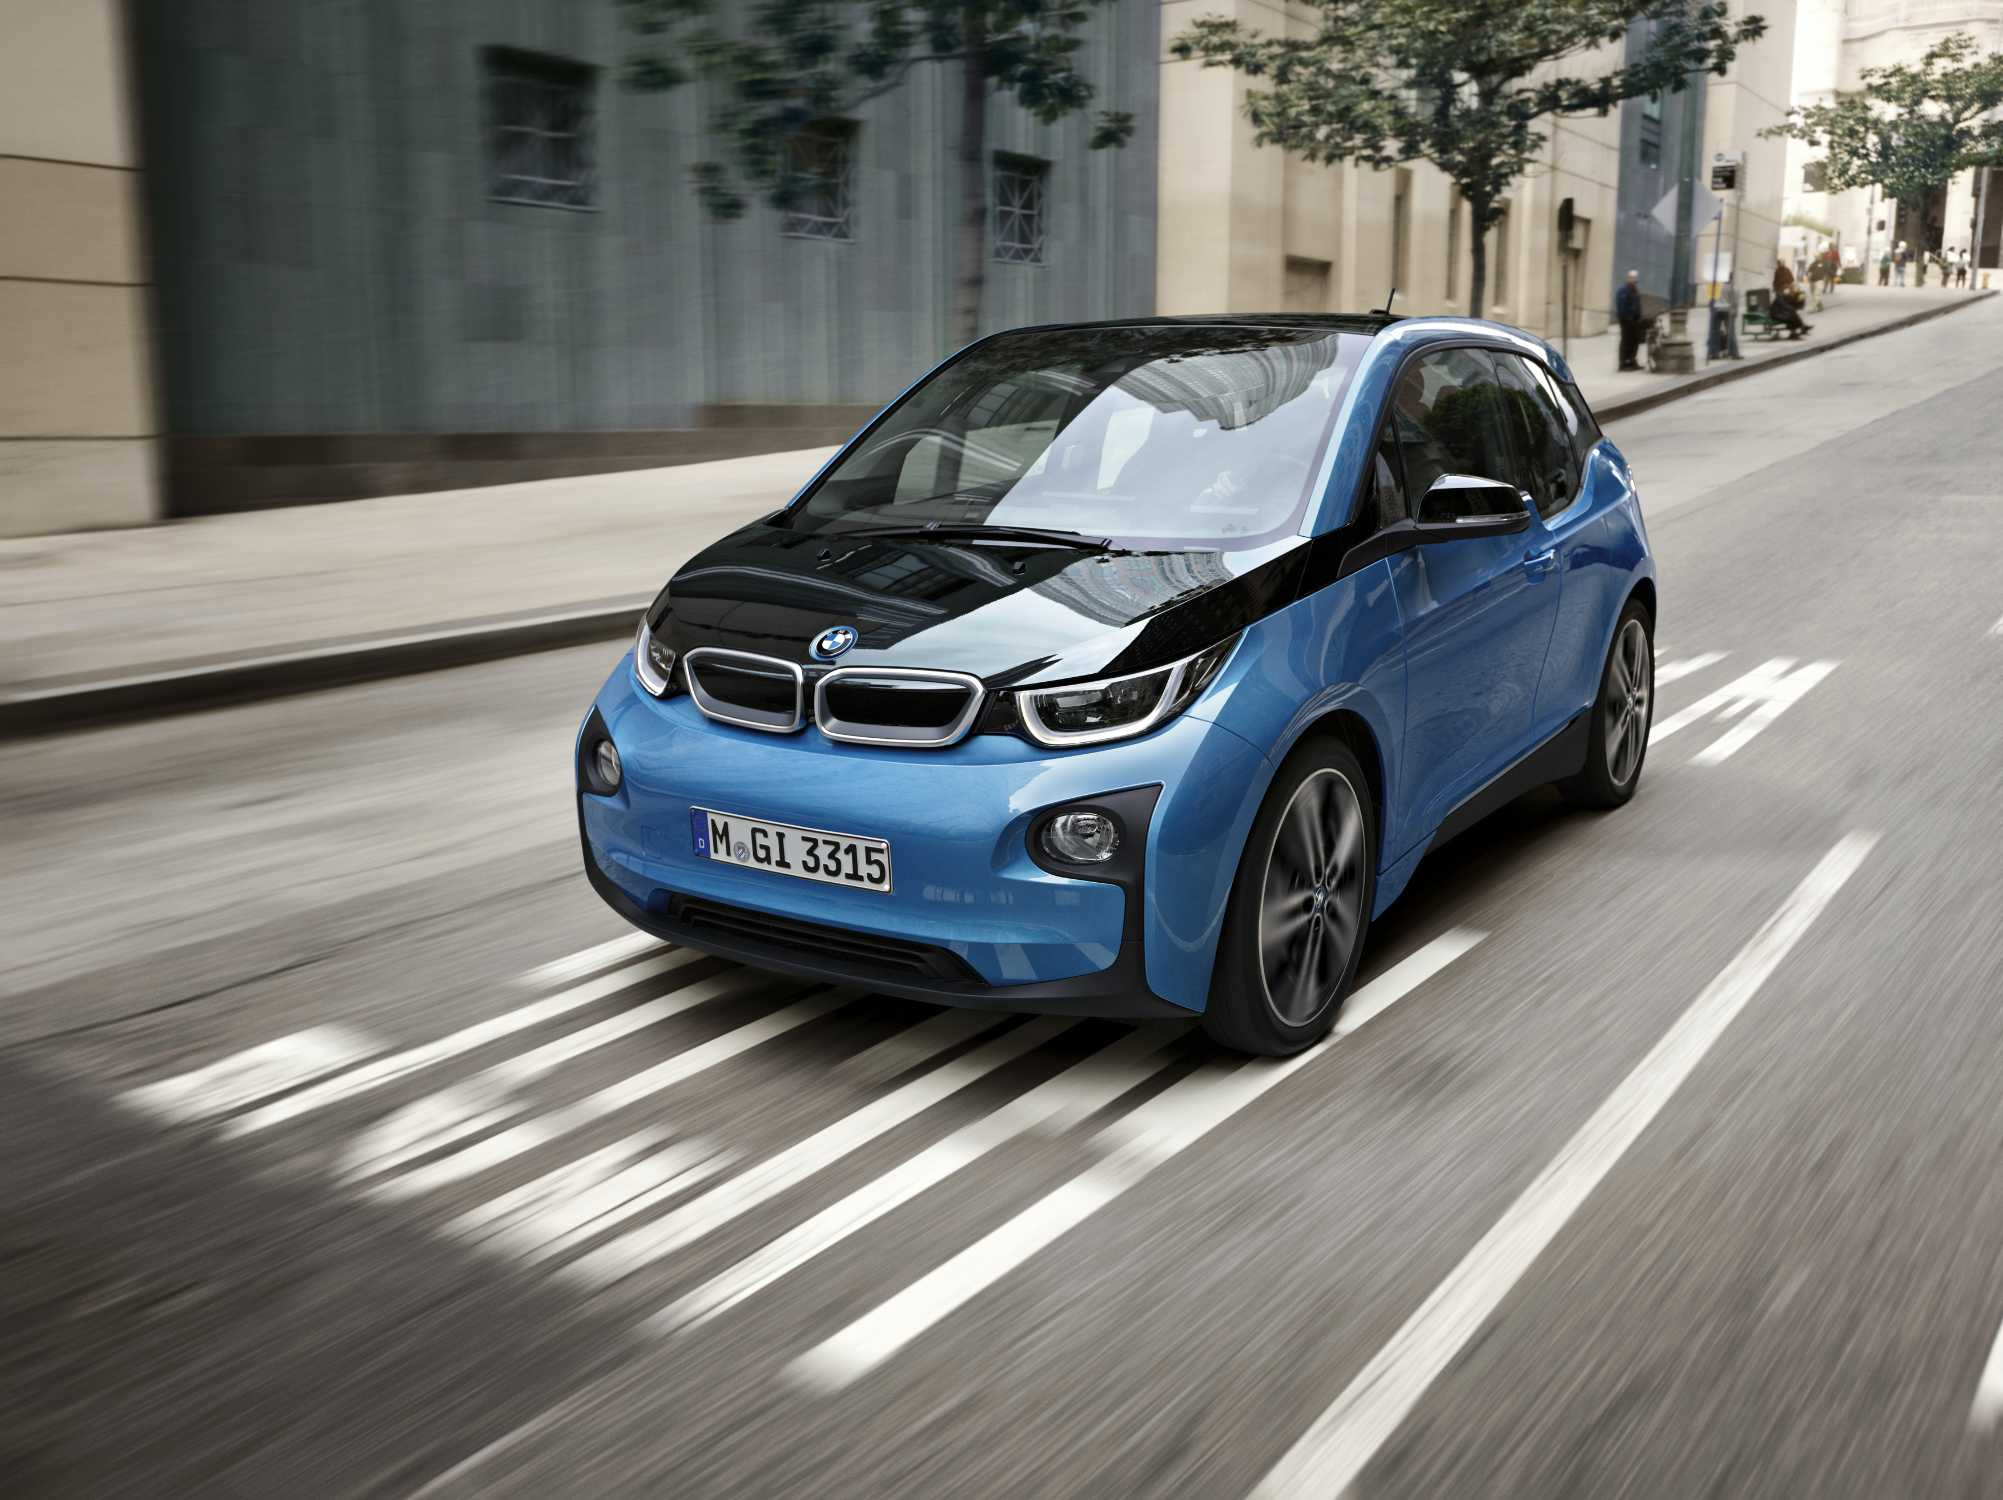 Eco-friendly electric cars to scoot around in